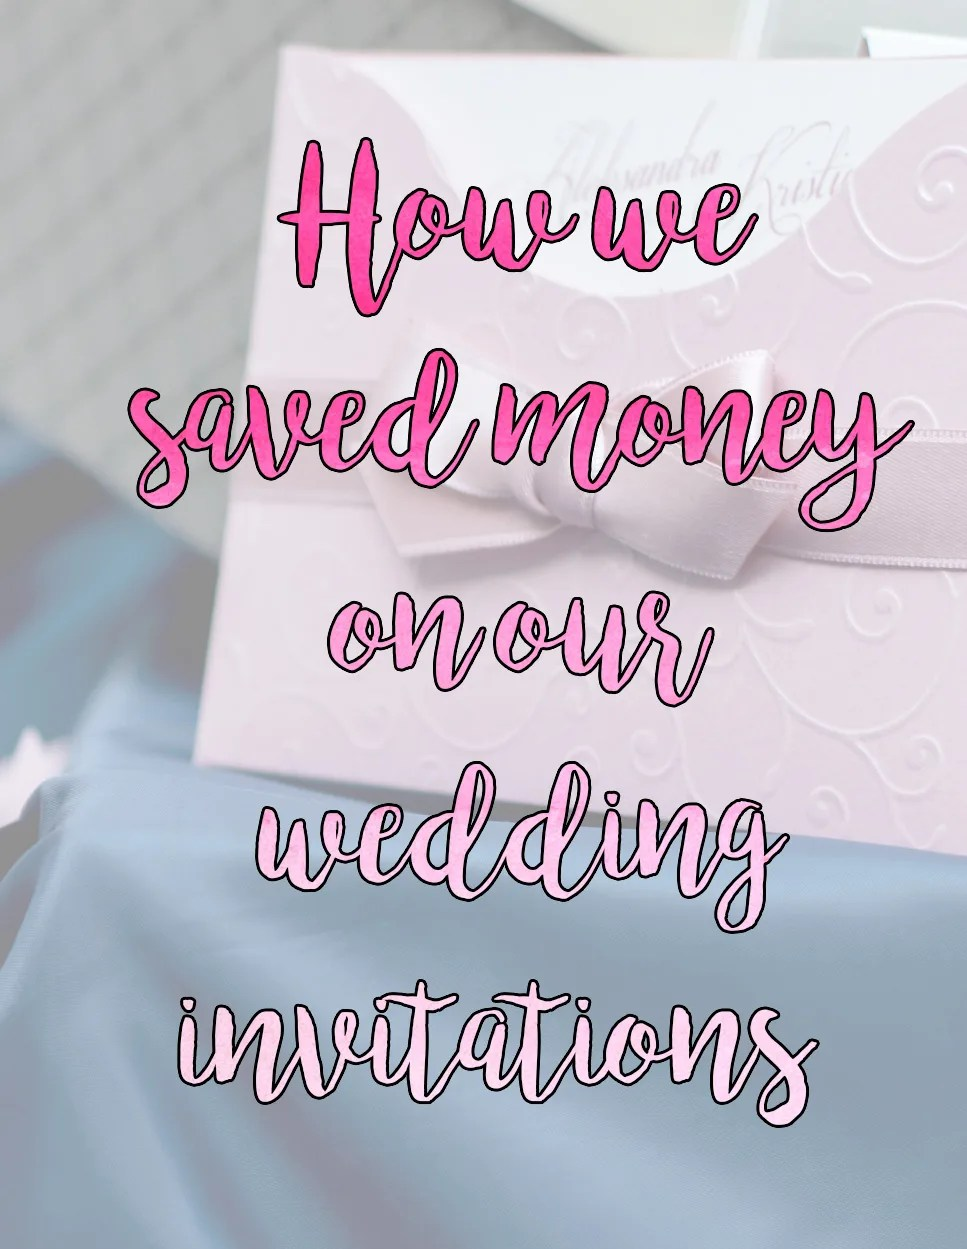 Cheap Wedding invitations, DIY Wedding invitations // stephanieorefice.net